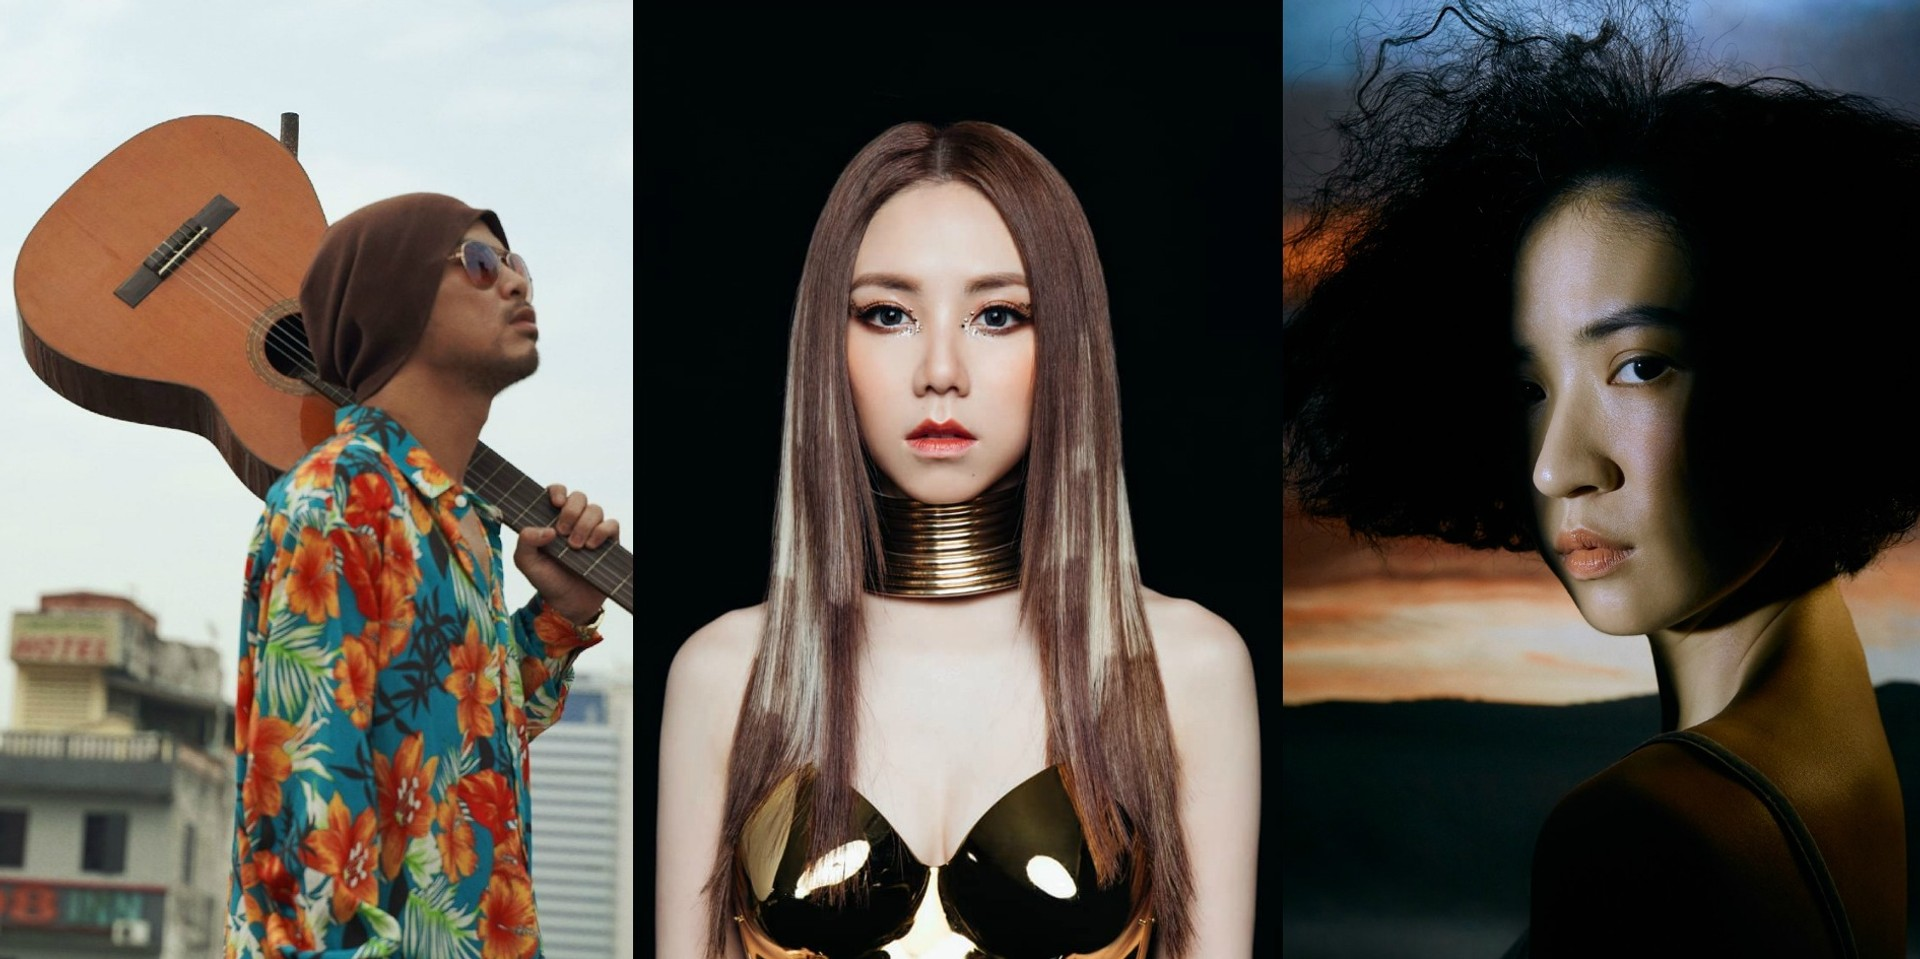 Golden Melody Awards 2020 full list of nominees announced – Namewee, G.E.M., 9m88, and more